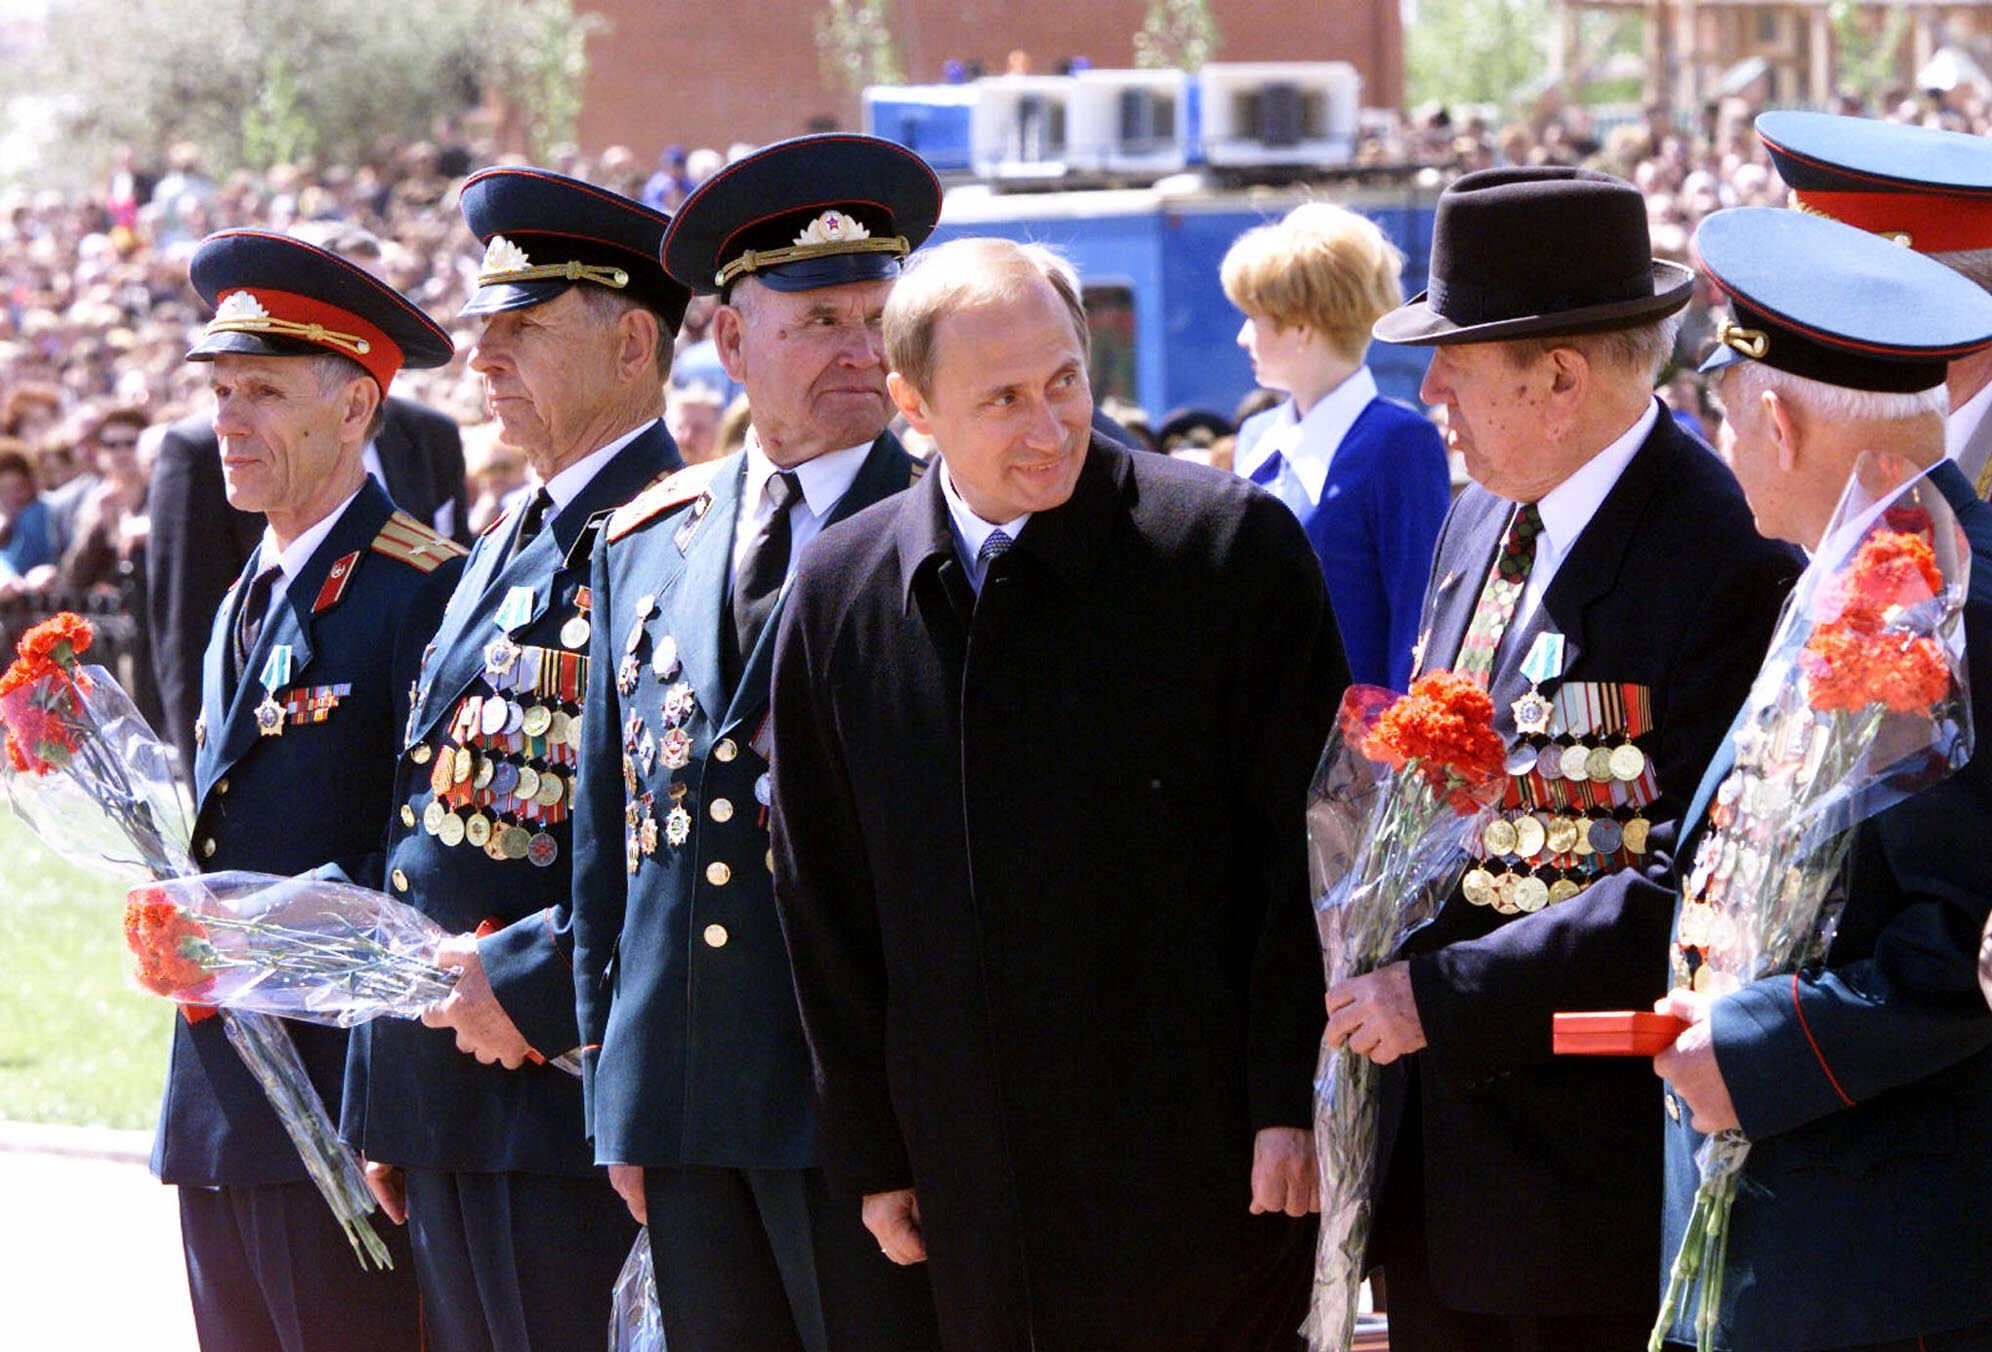 Vladimir Putin in May 2000 with World War II veterans in Kursk, Russia, site of history's biggest tank battle, when Soviet forces defeated a major Nazi German offensive in 1943. Putin invoked WWII victories as a way to restore Russian pride after the Soviet collapse. (Credit: AP Photo)